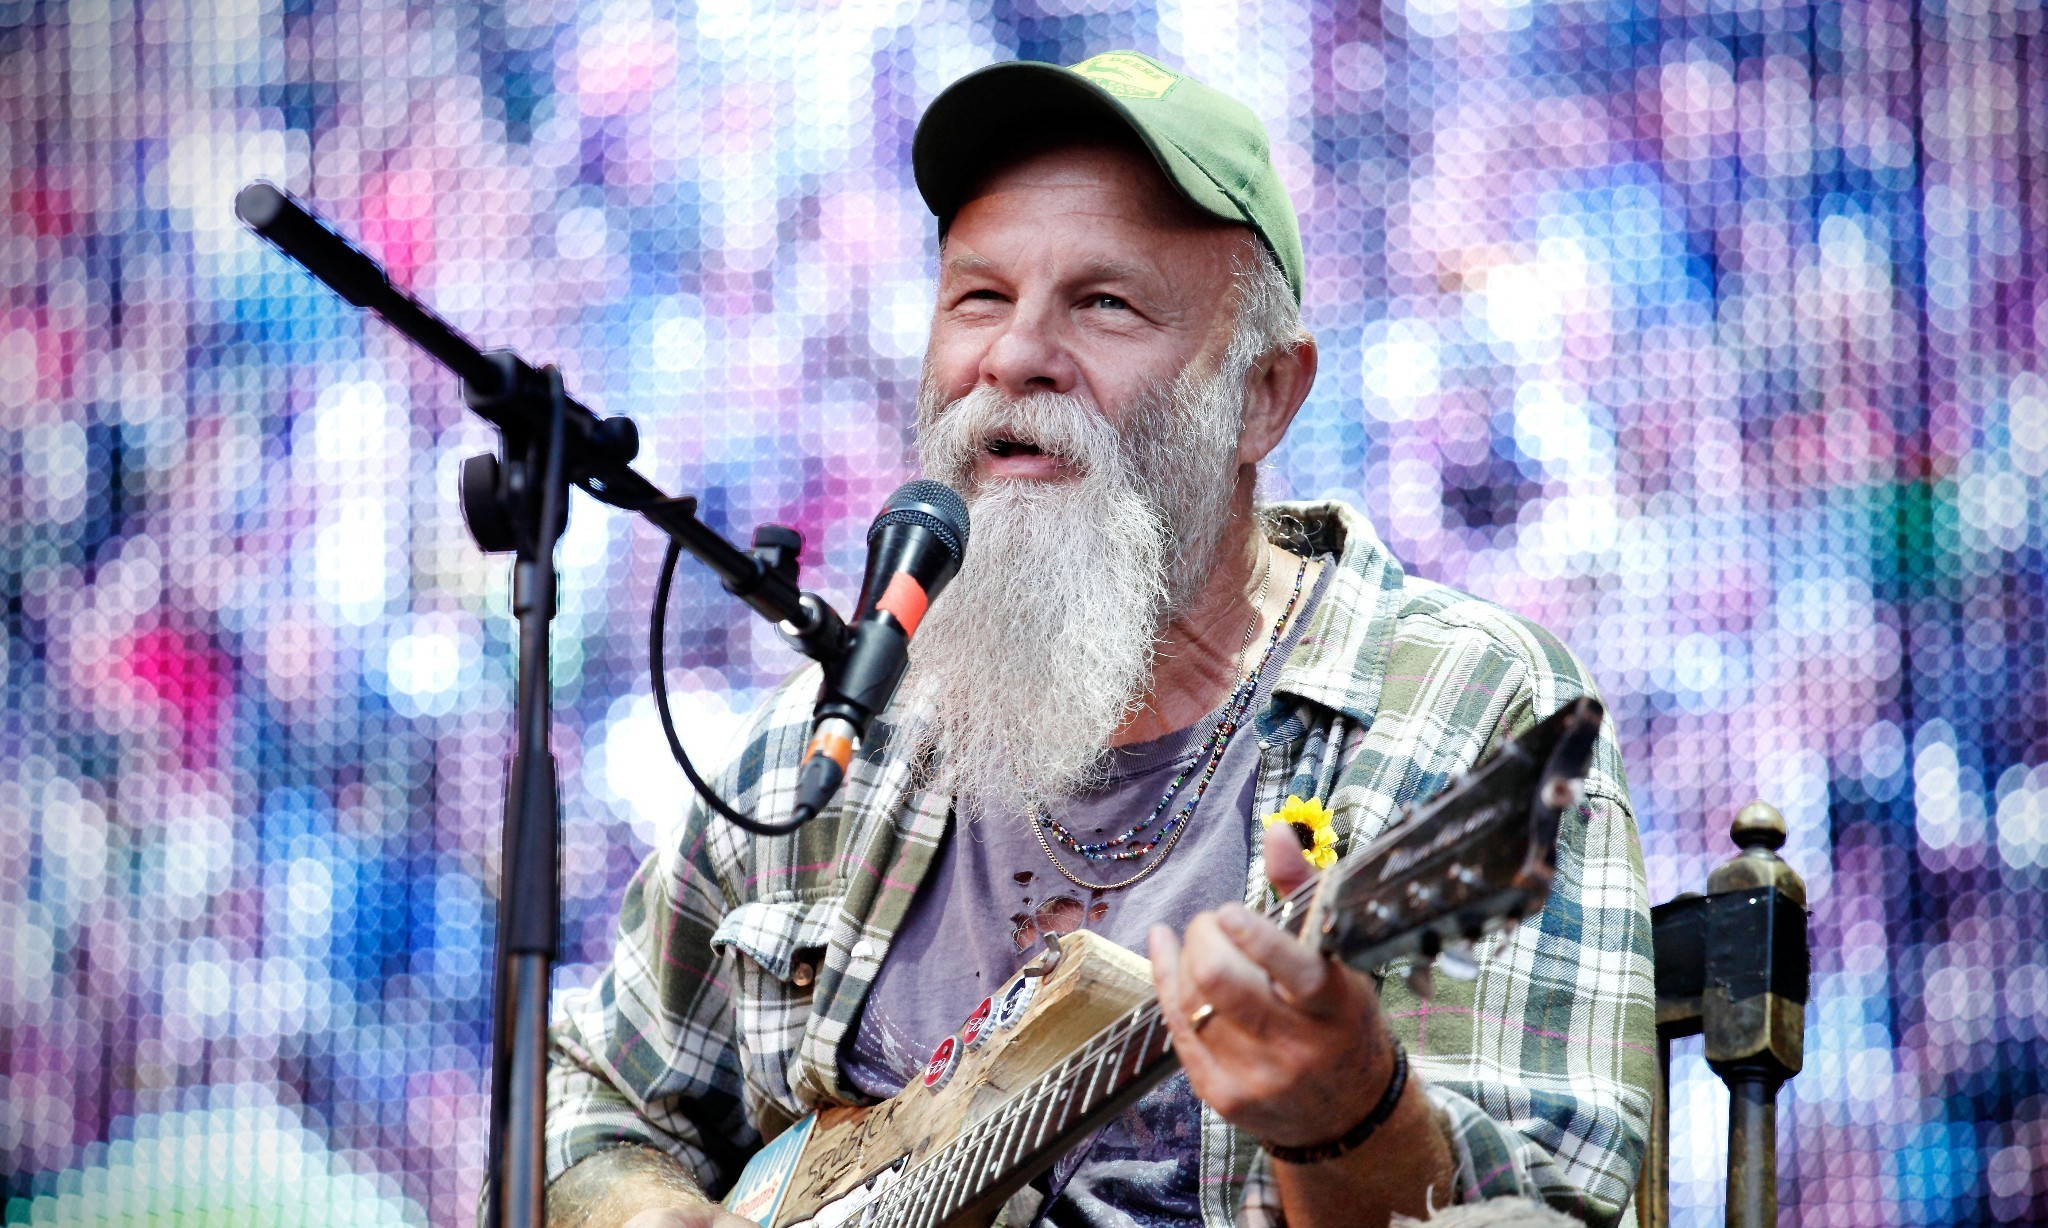 How Seasick Steve turned out to be Session Man Steve